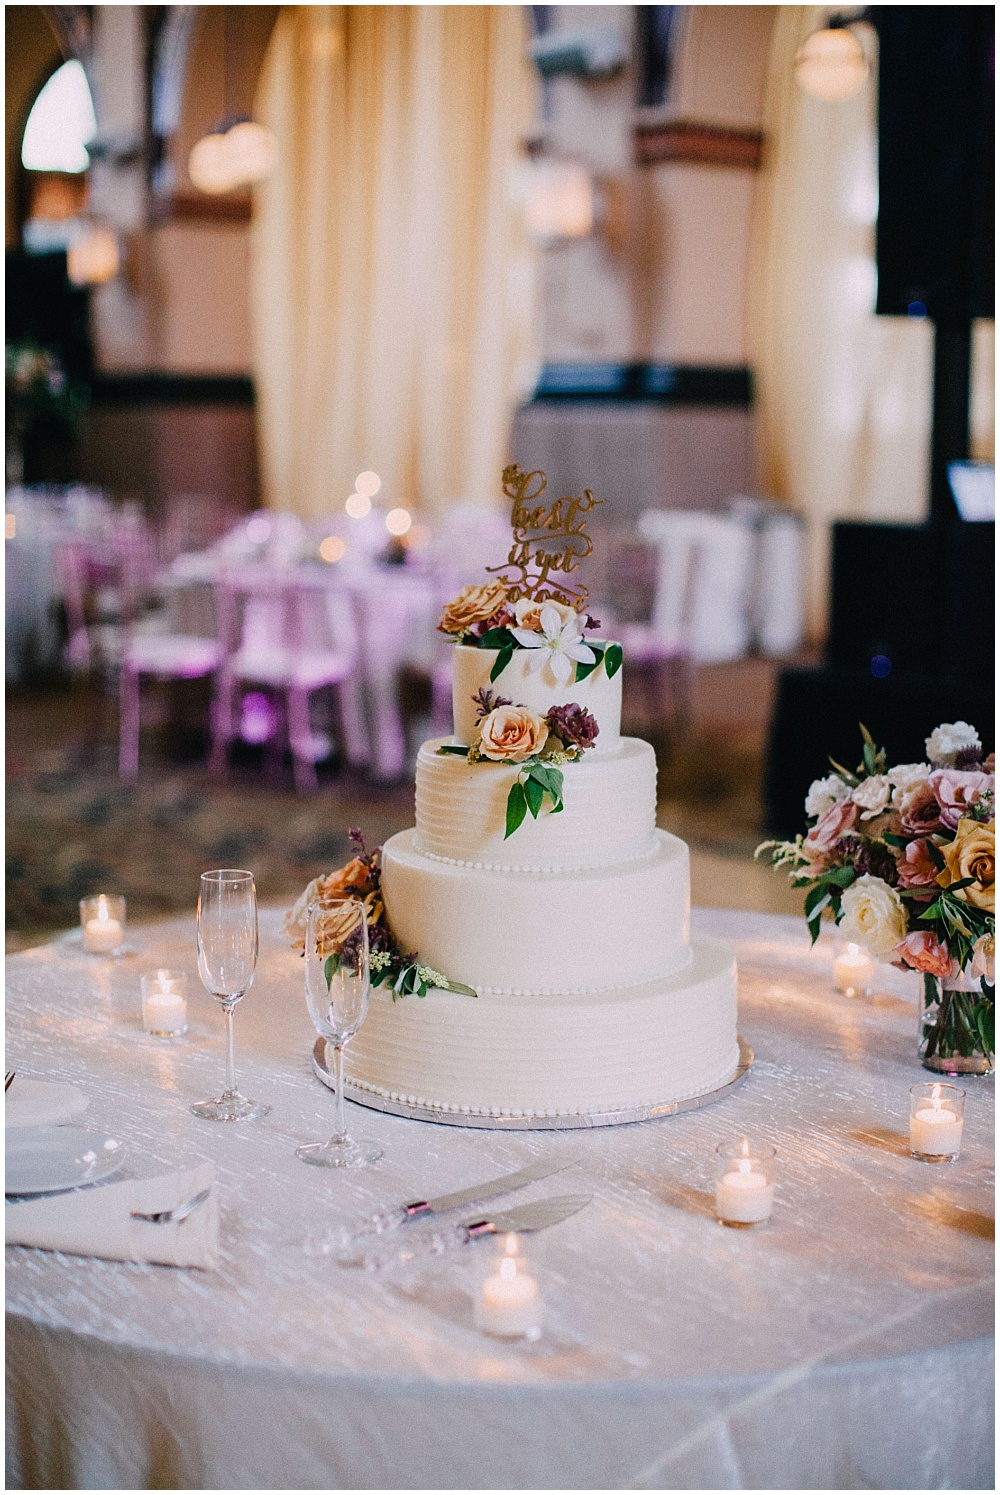 White wedding cake with simple flowers | Downtown Indianapolis Wedding by Caroline Grace Photography & Jessica Dum Wedding Coordination